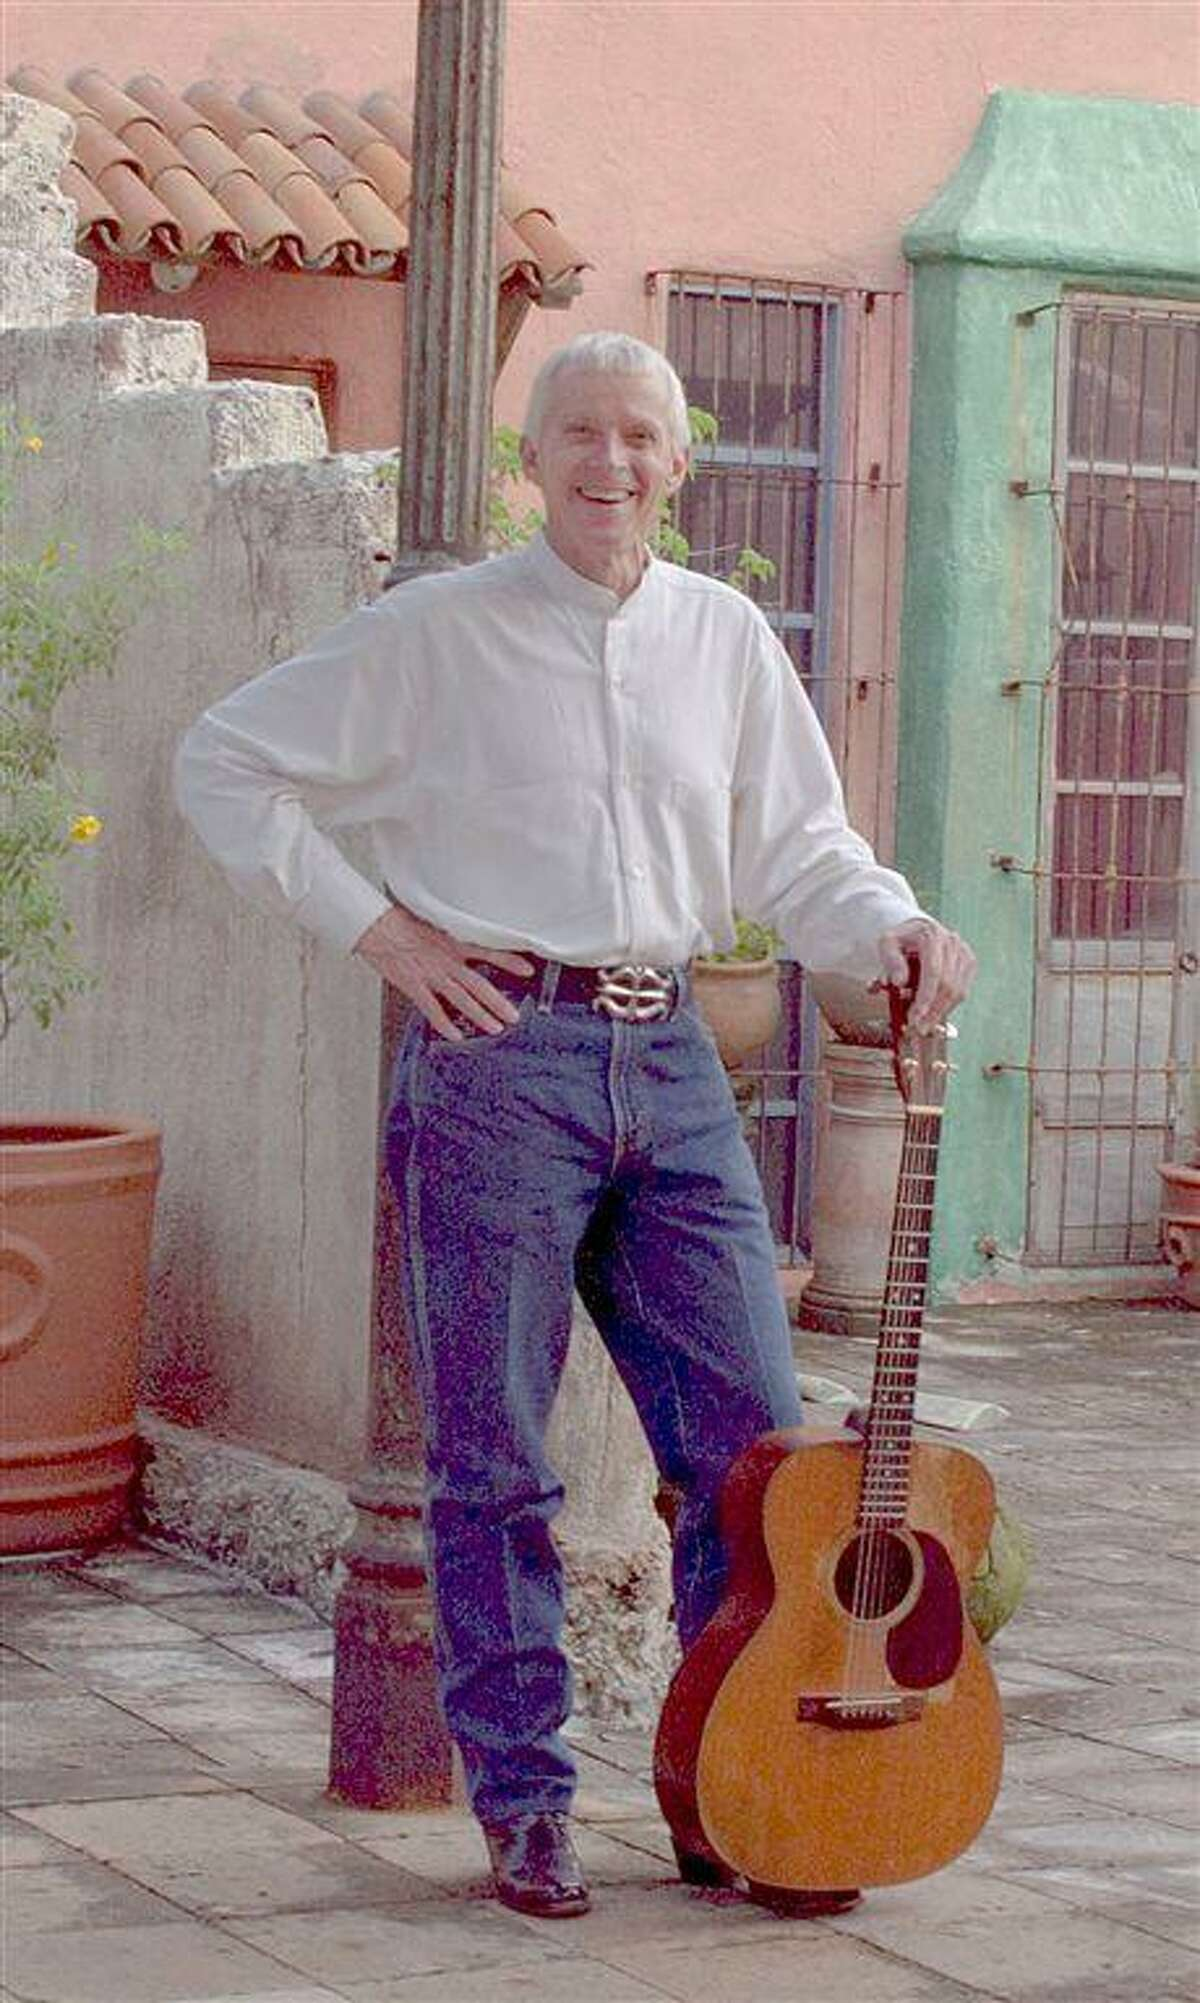 Spellbinding storyteller Don Sanders was a longtime fixture in the Houston music scene. He died this past weekend, at age 73.